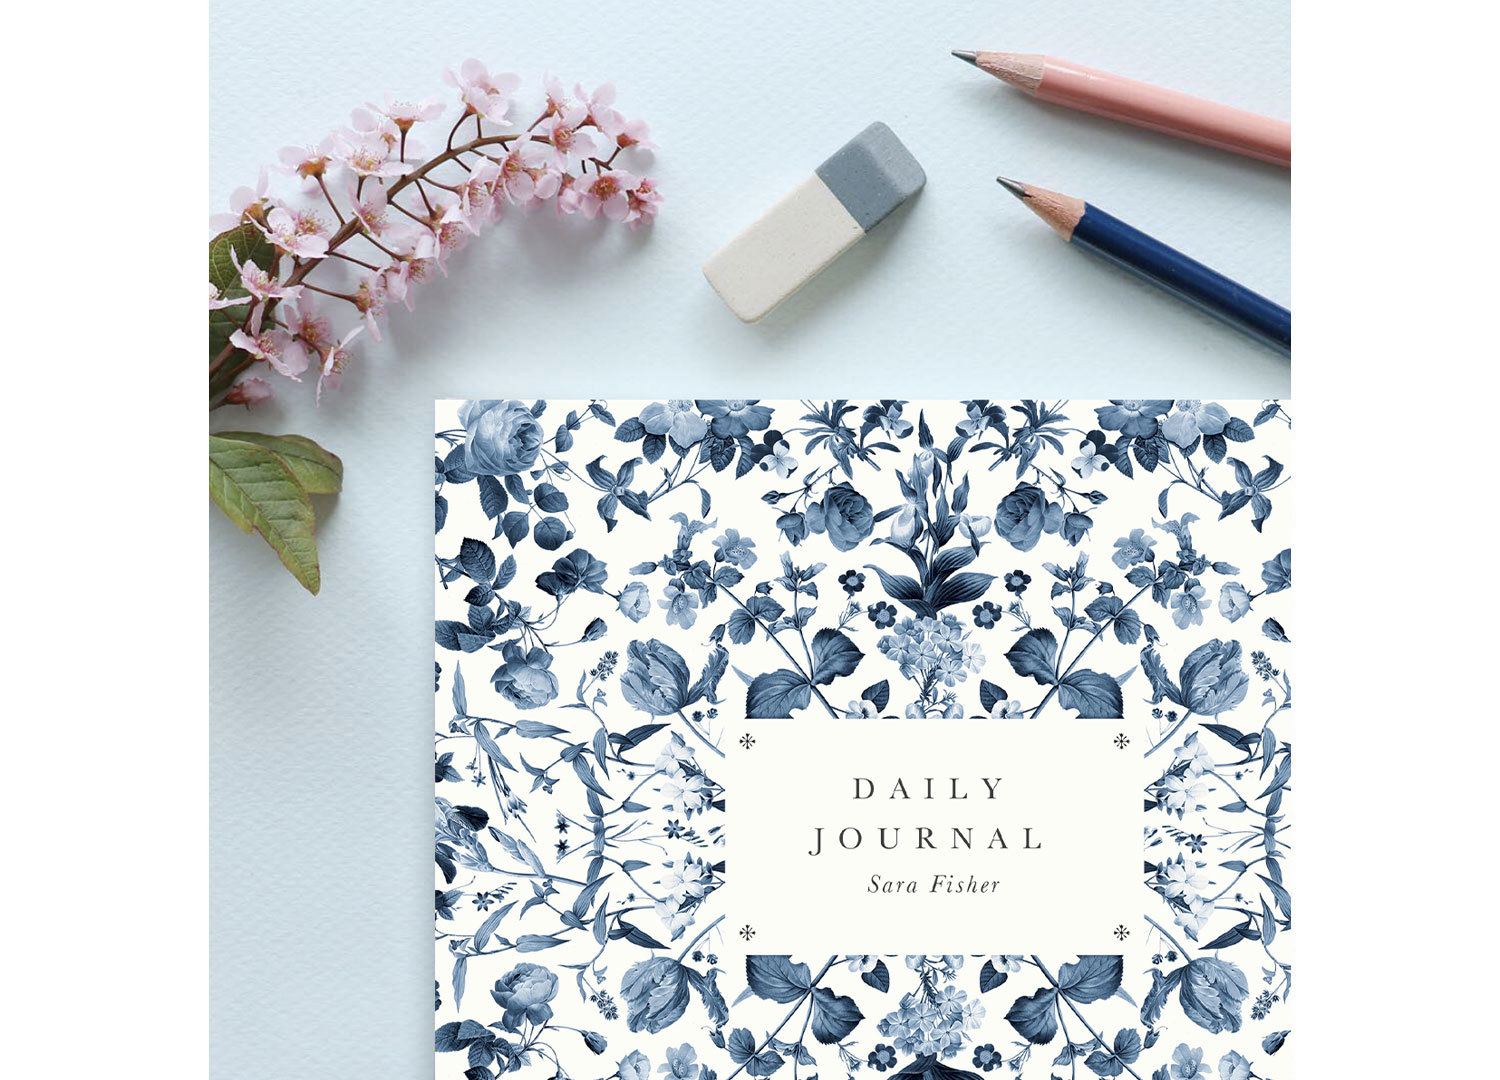 Paper-anniversary-gift-ideas-notebook.jpg